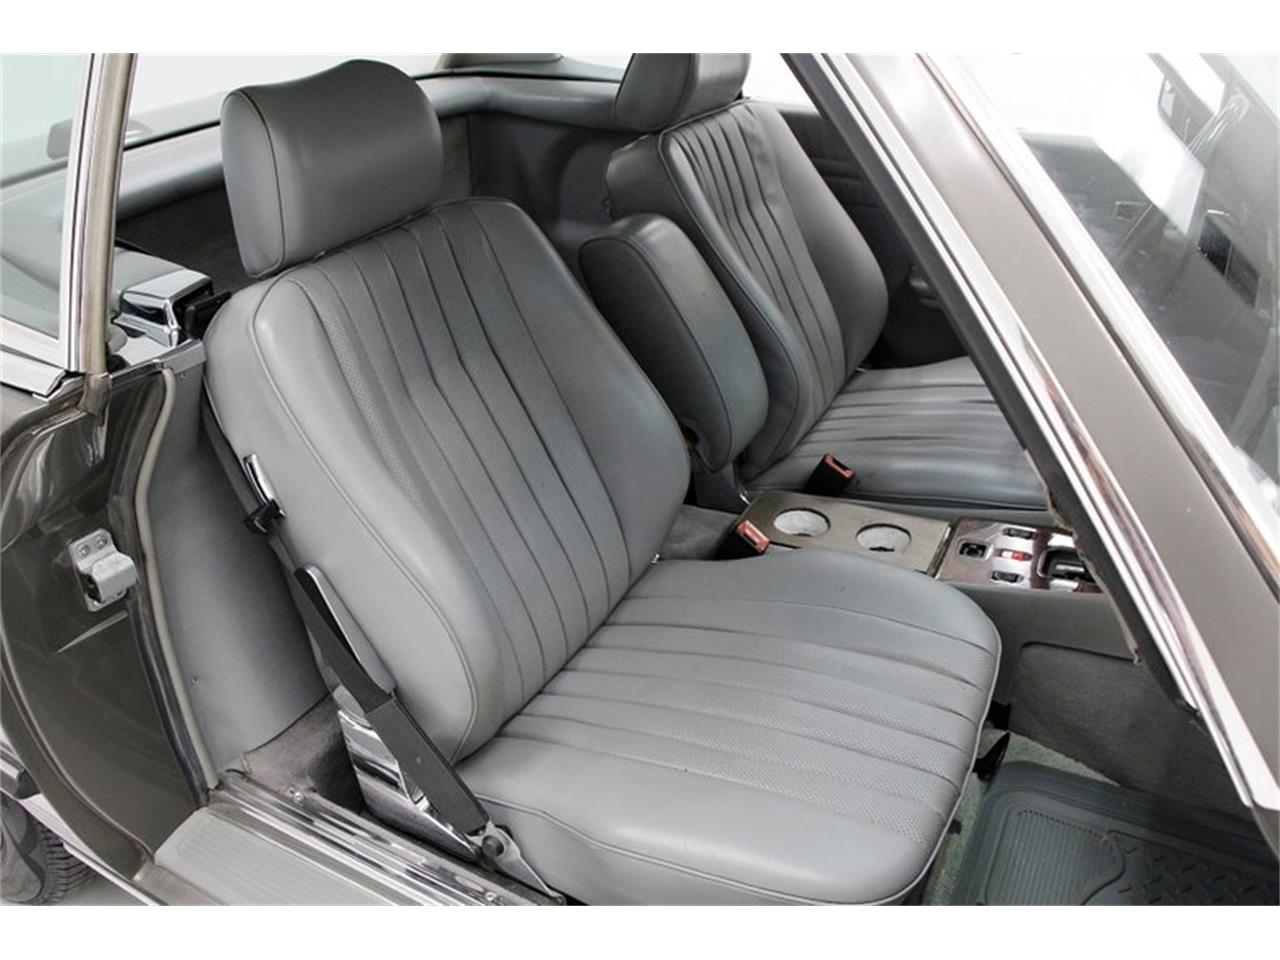 1986 Mercedes-Benz 560SL for sale in Morgantown, PA ...